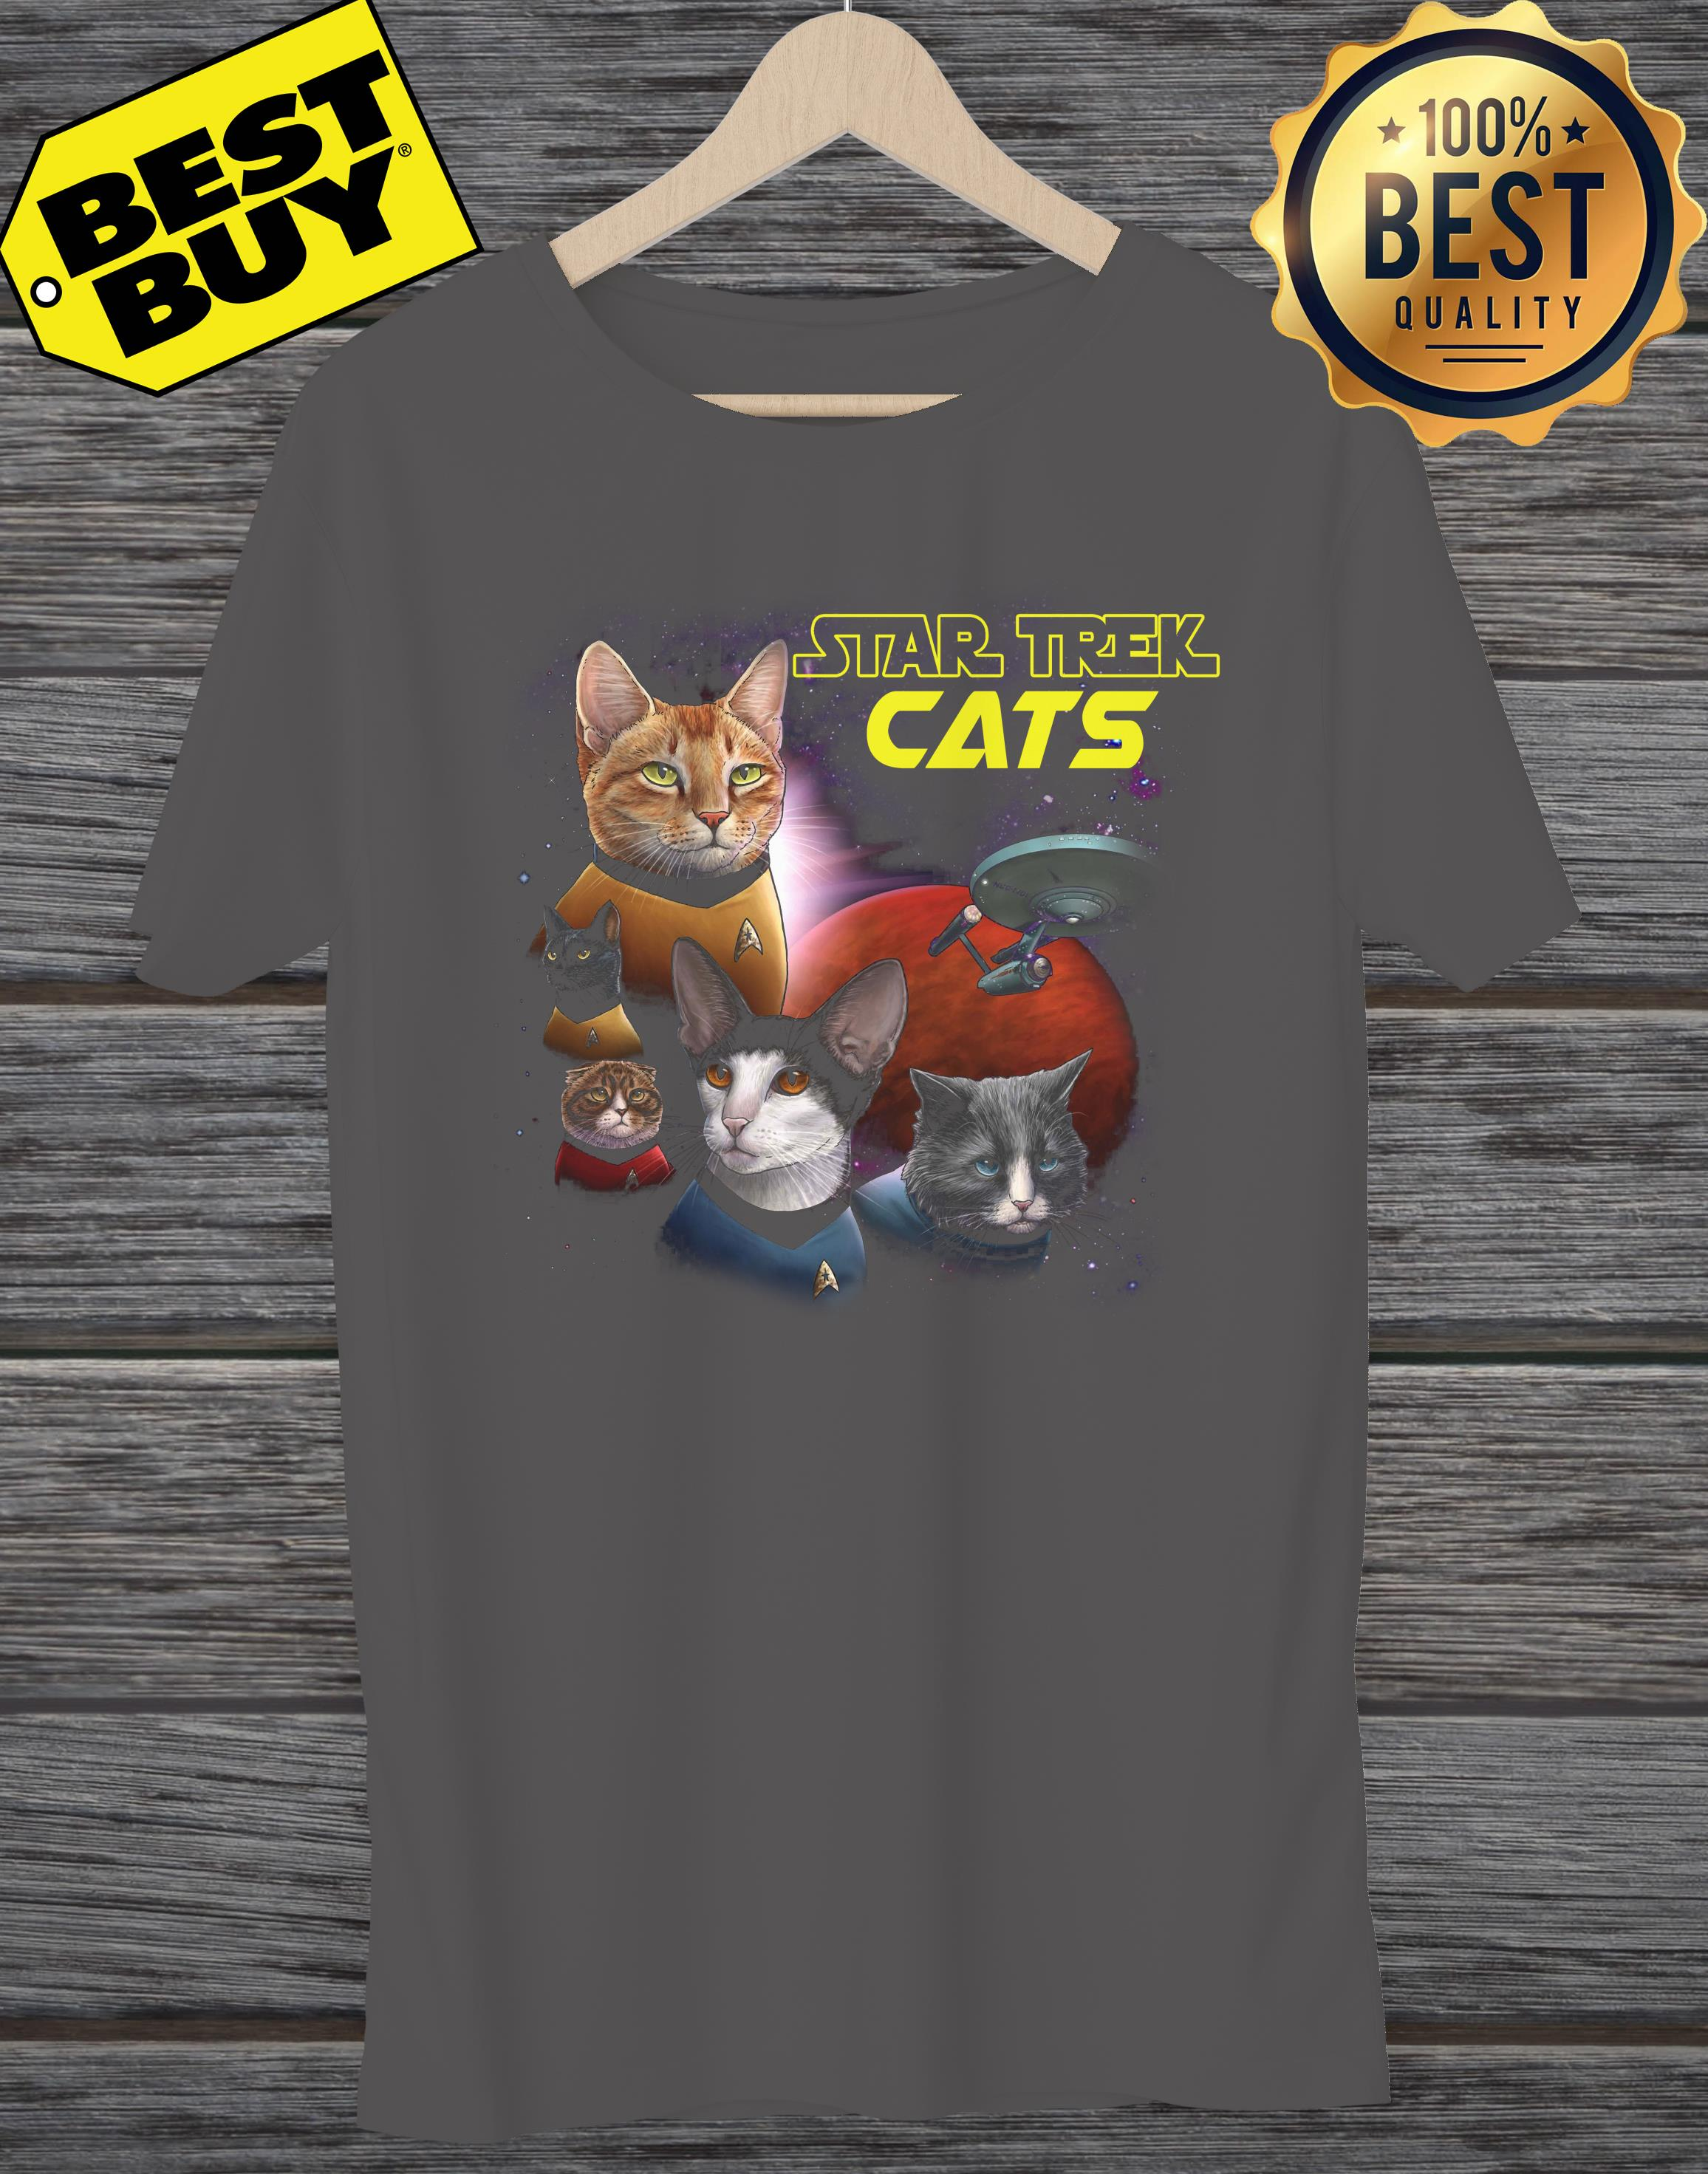 Star Trek Cats Books And Merch ladies tee